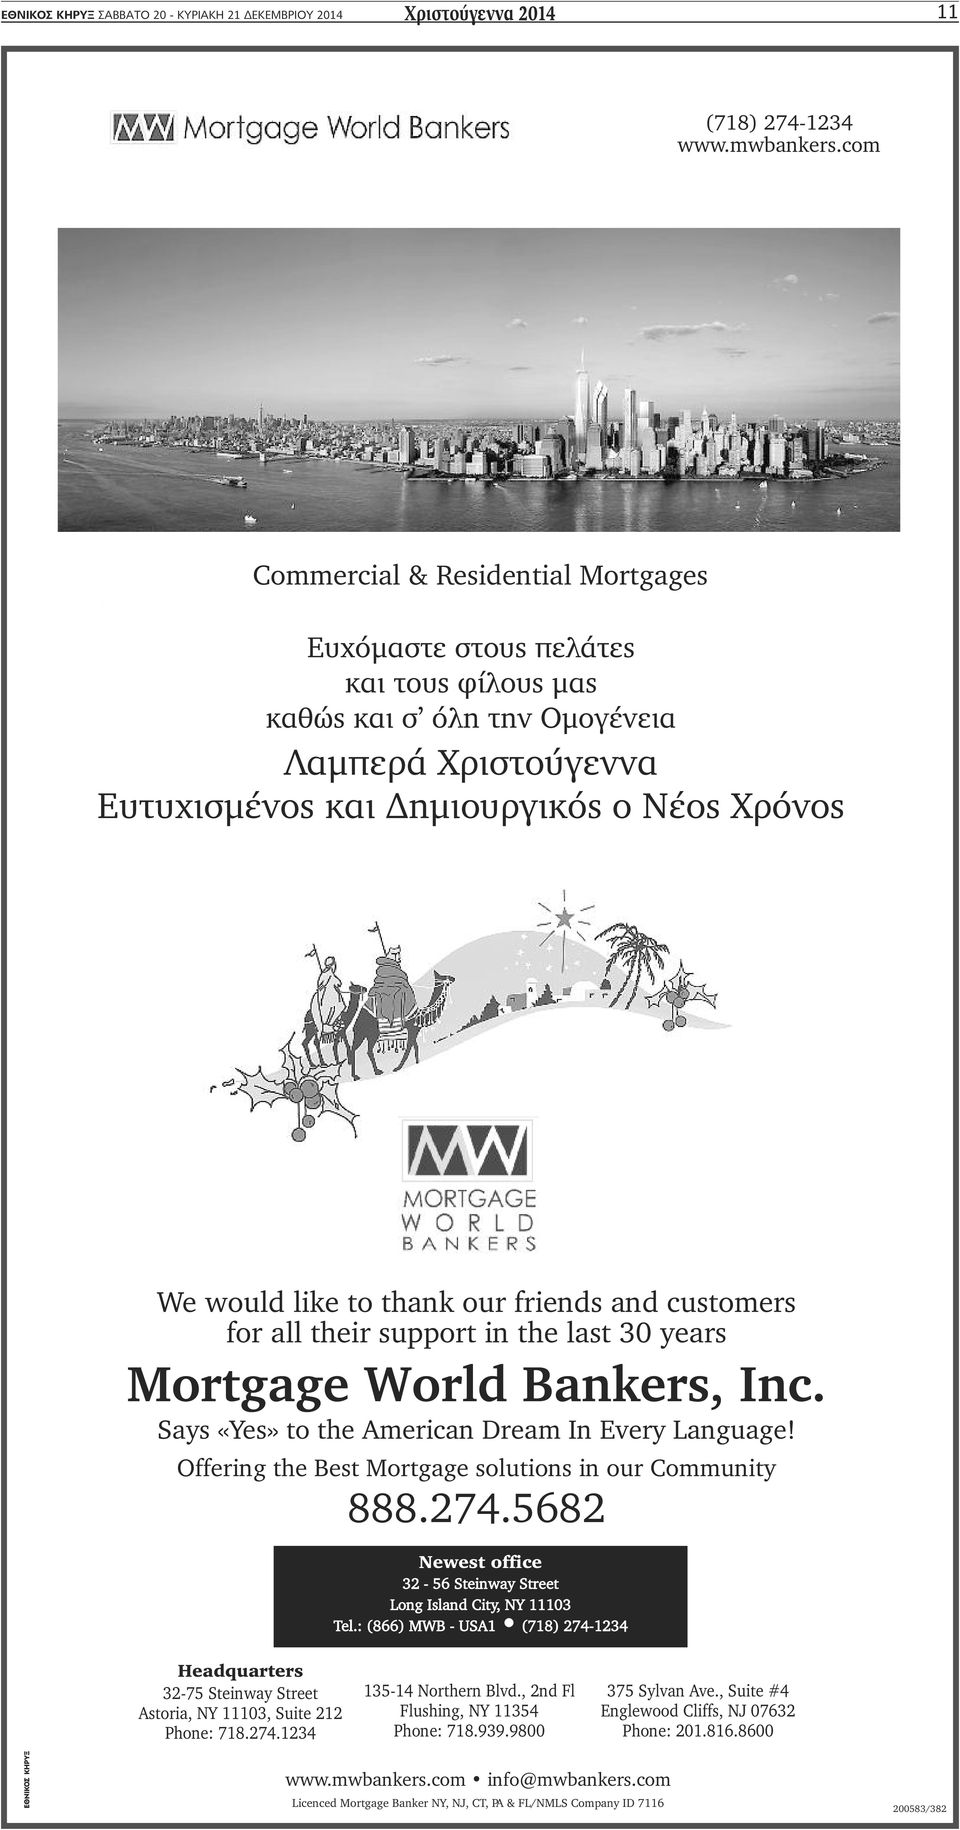 thank our friends and customers for all their support in the last 30 years Mortgage World Bankers, Inc. Says «Yes» to the American Dream In Every Language!